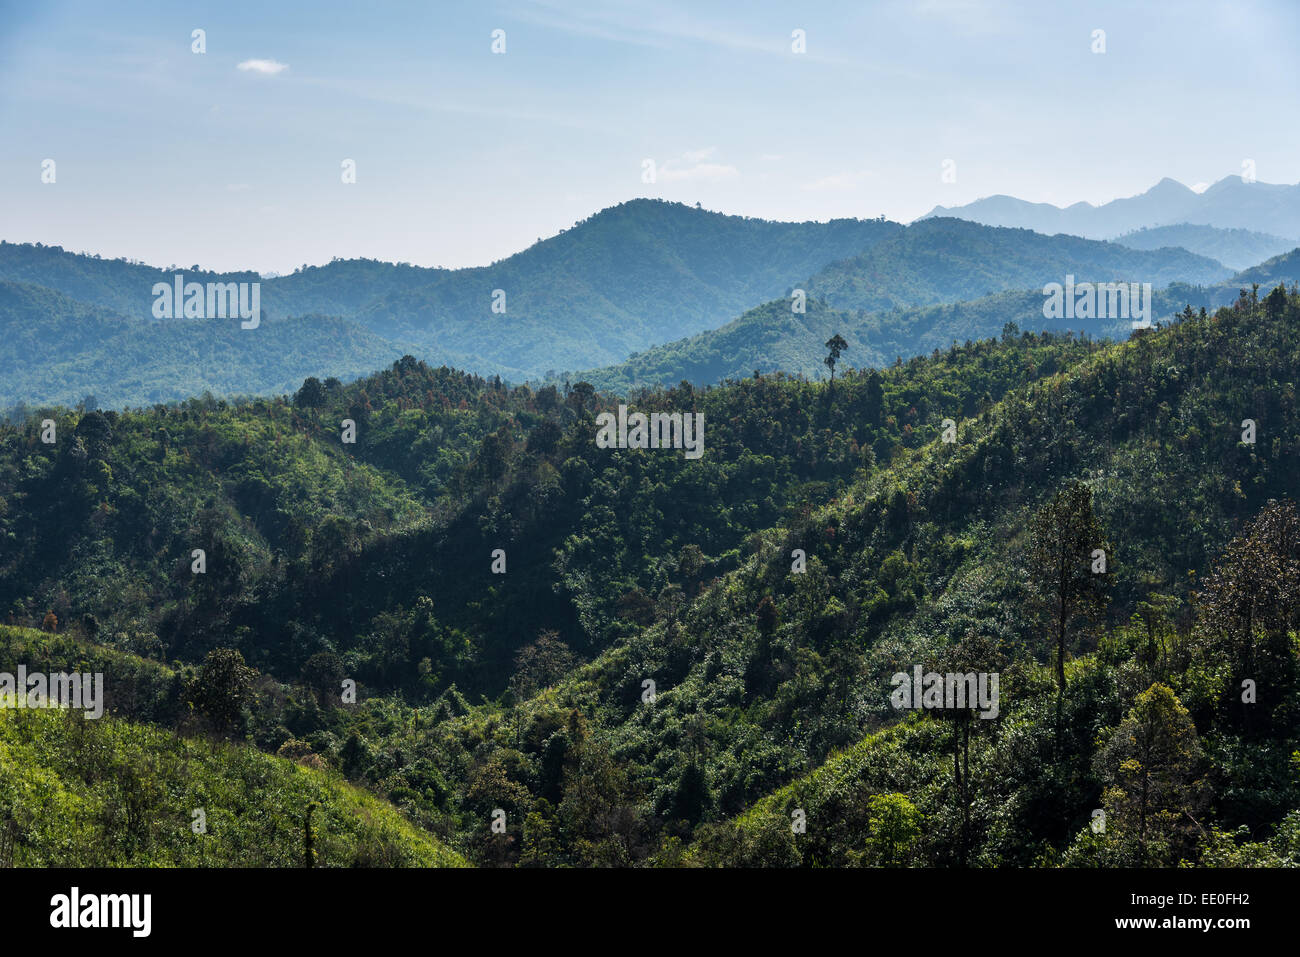 The green forest - Stock Image